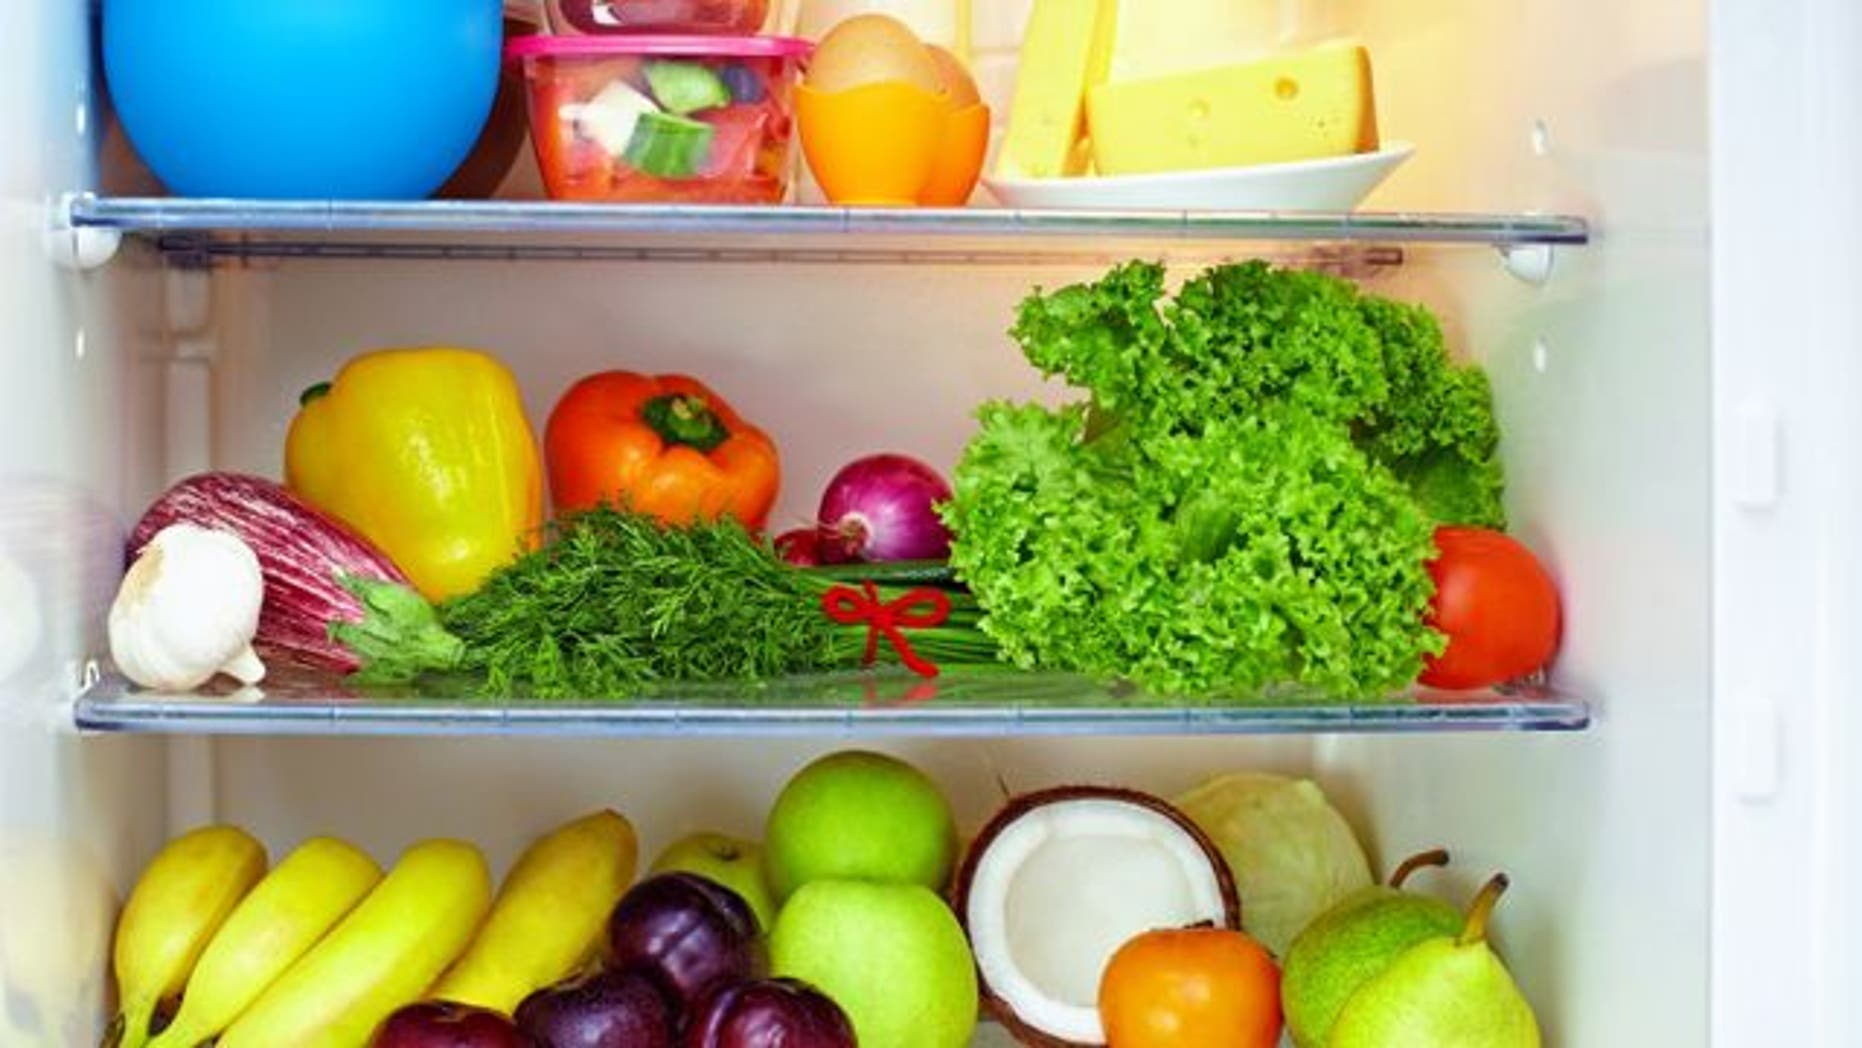 How long is too long to keep food in the fridge? | Fox News